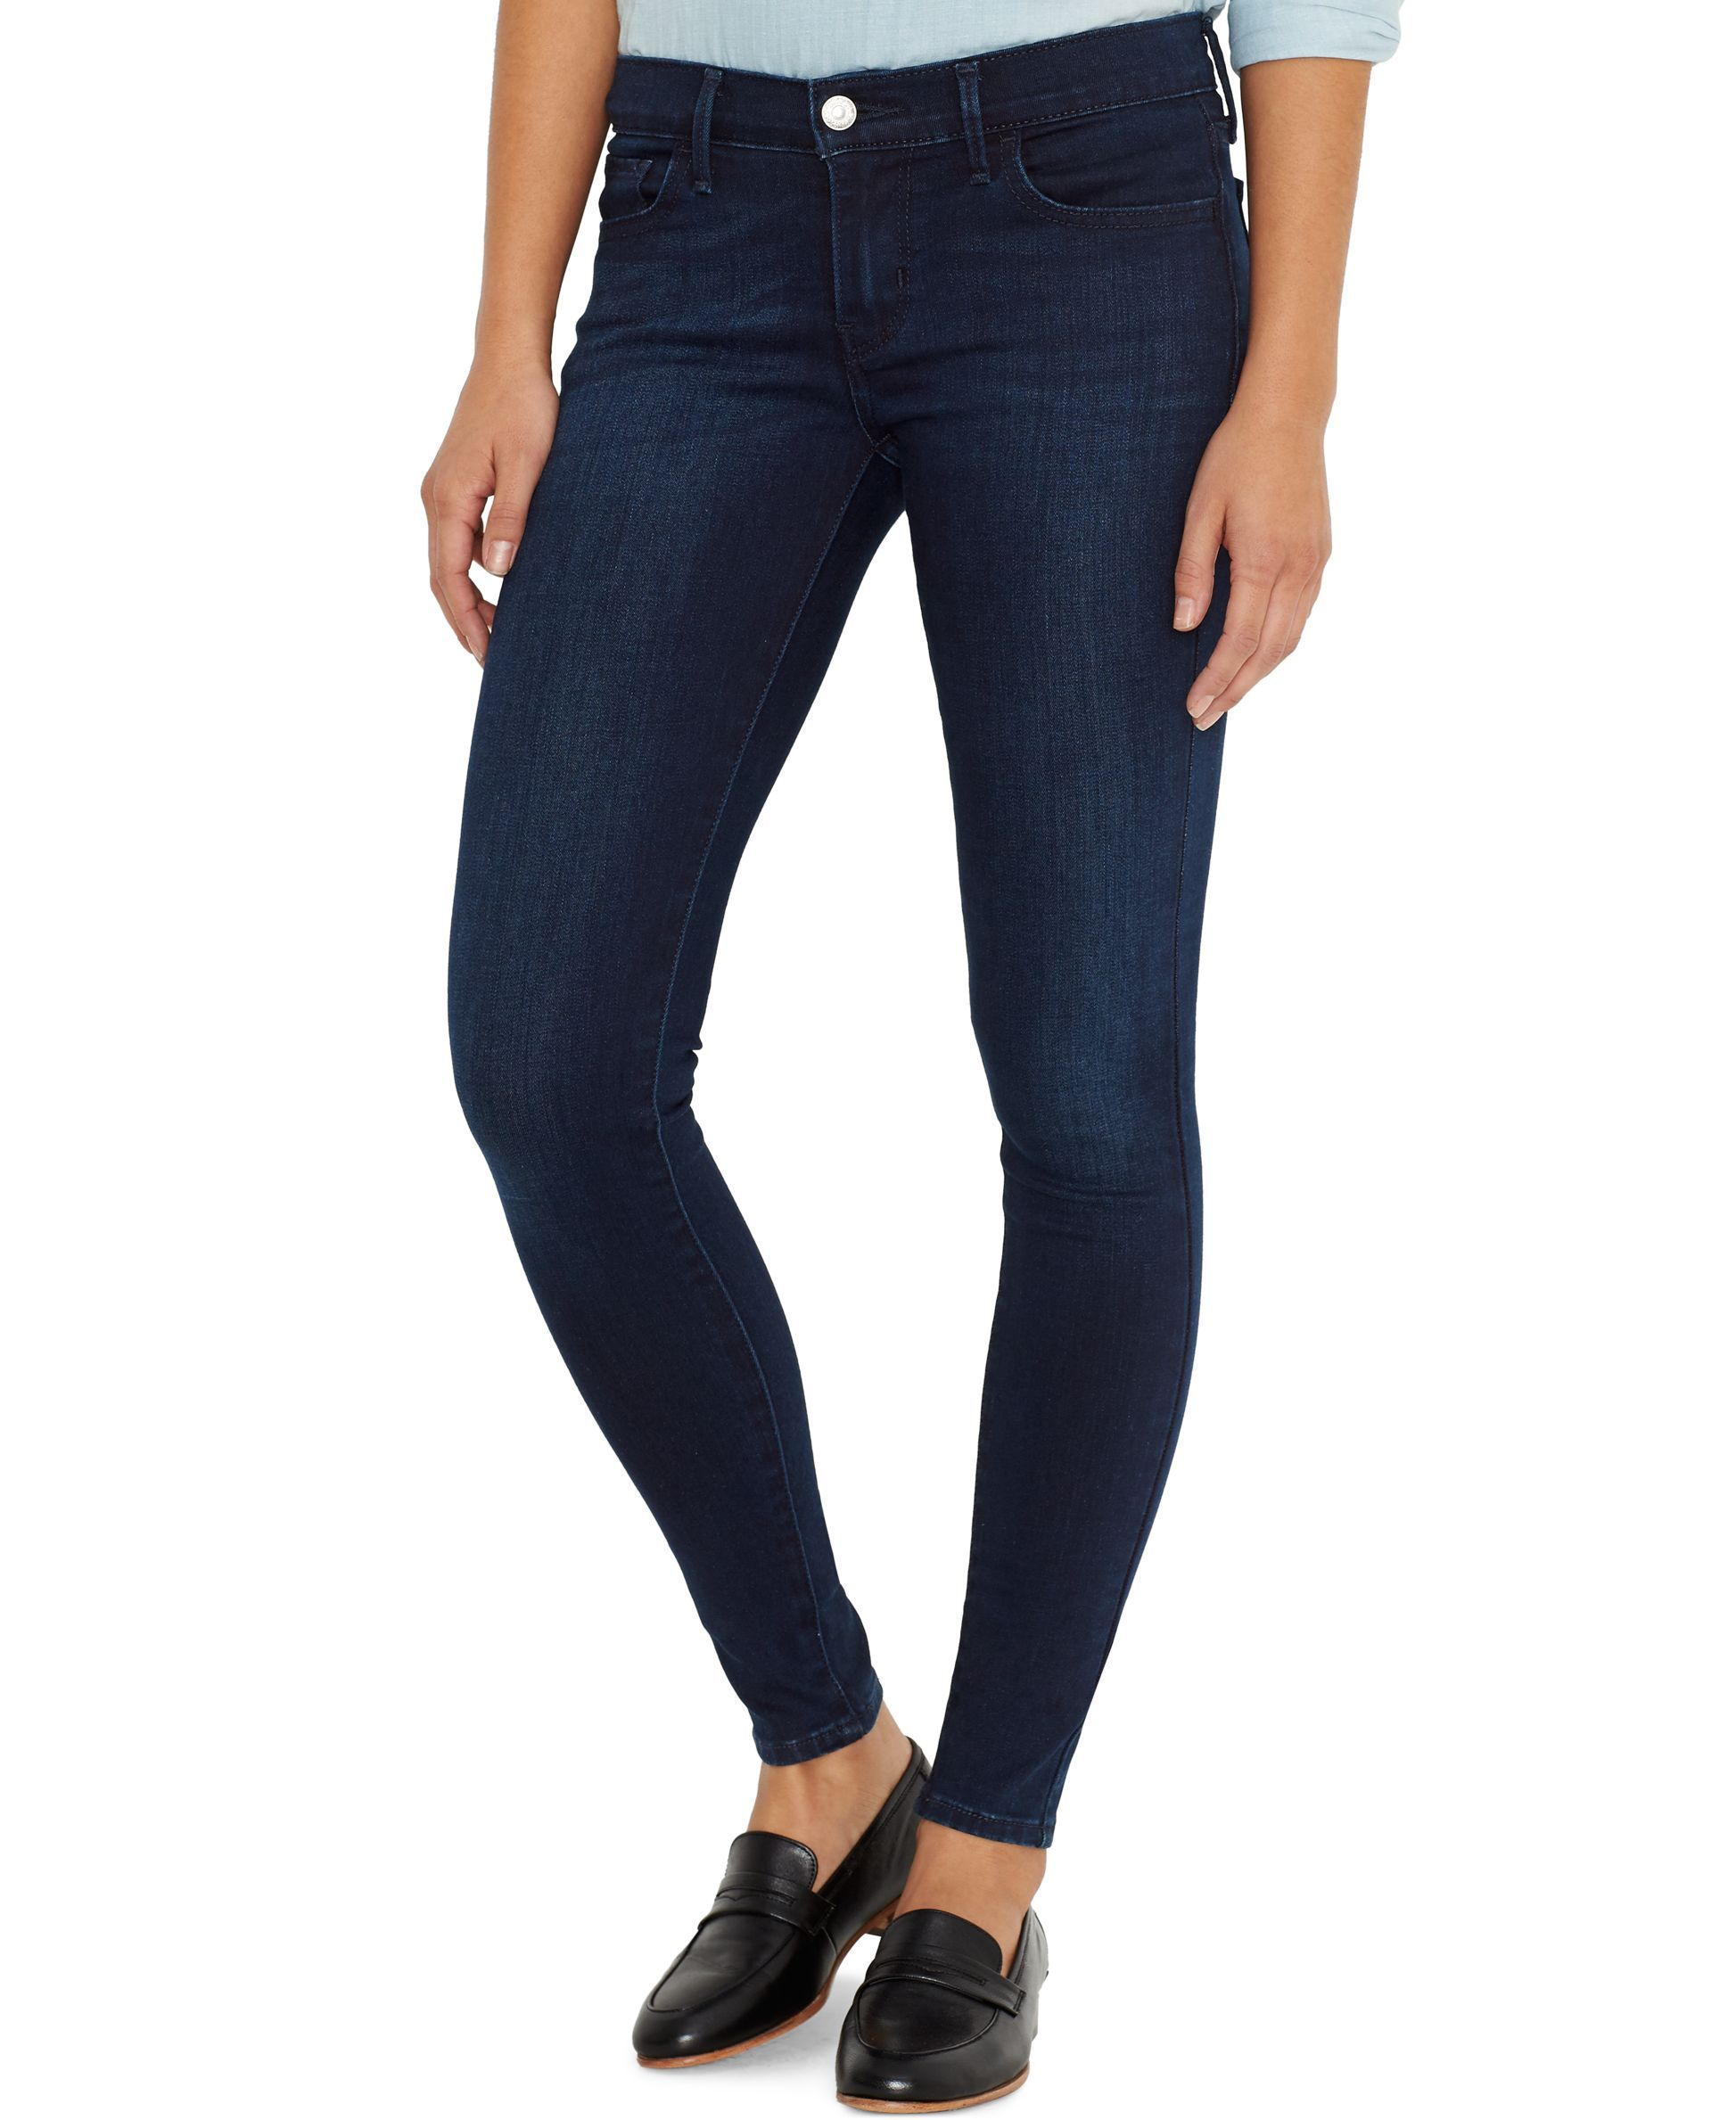 Levi's 710 Super Skinny Jeans, Waterfall Wash